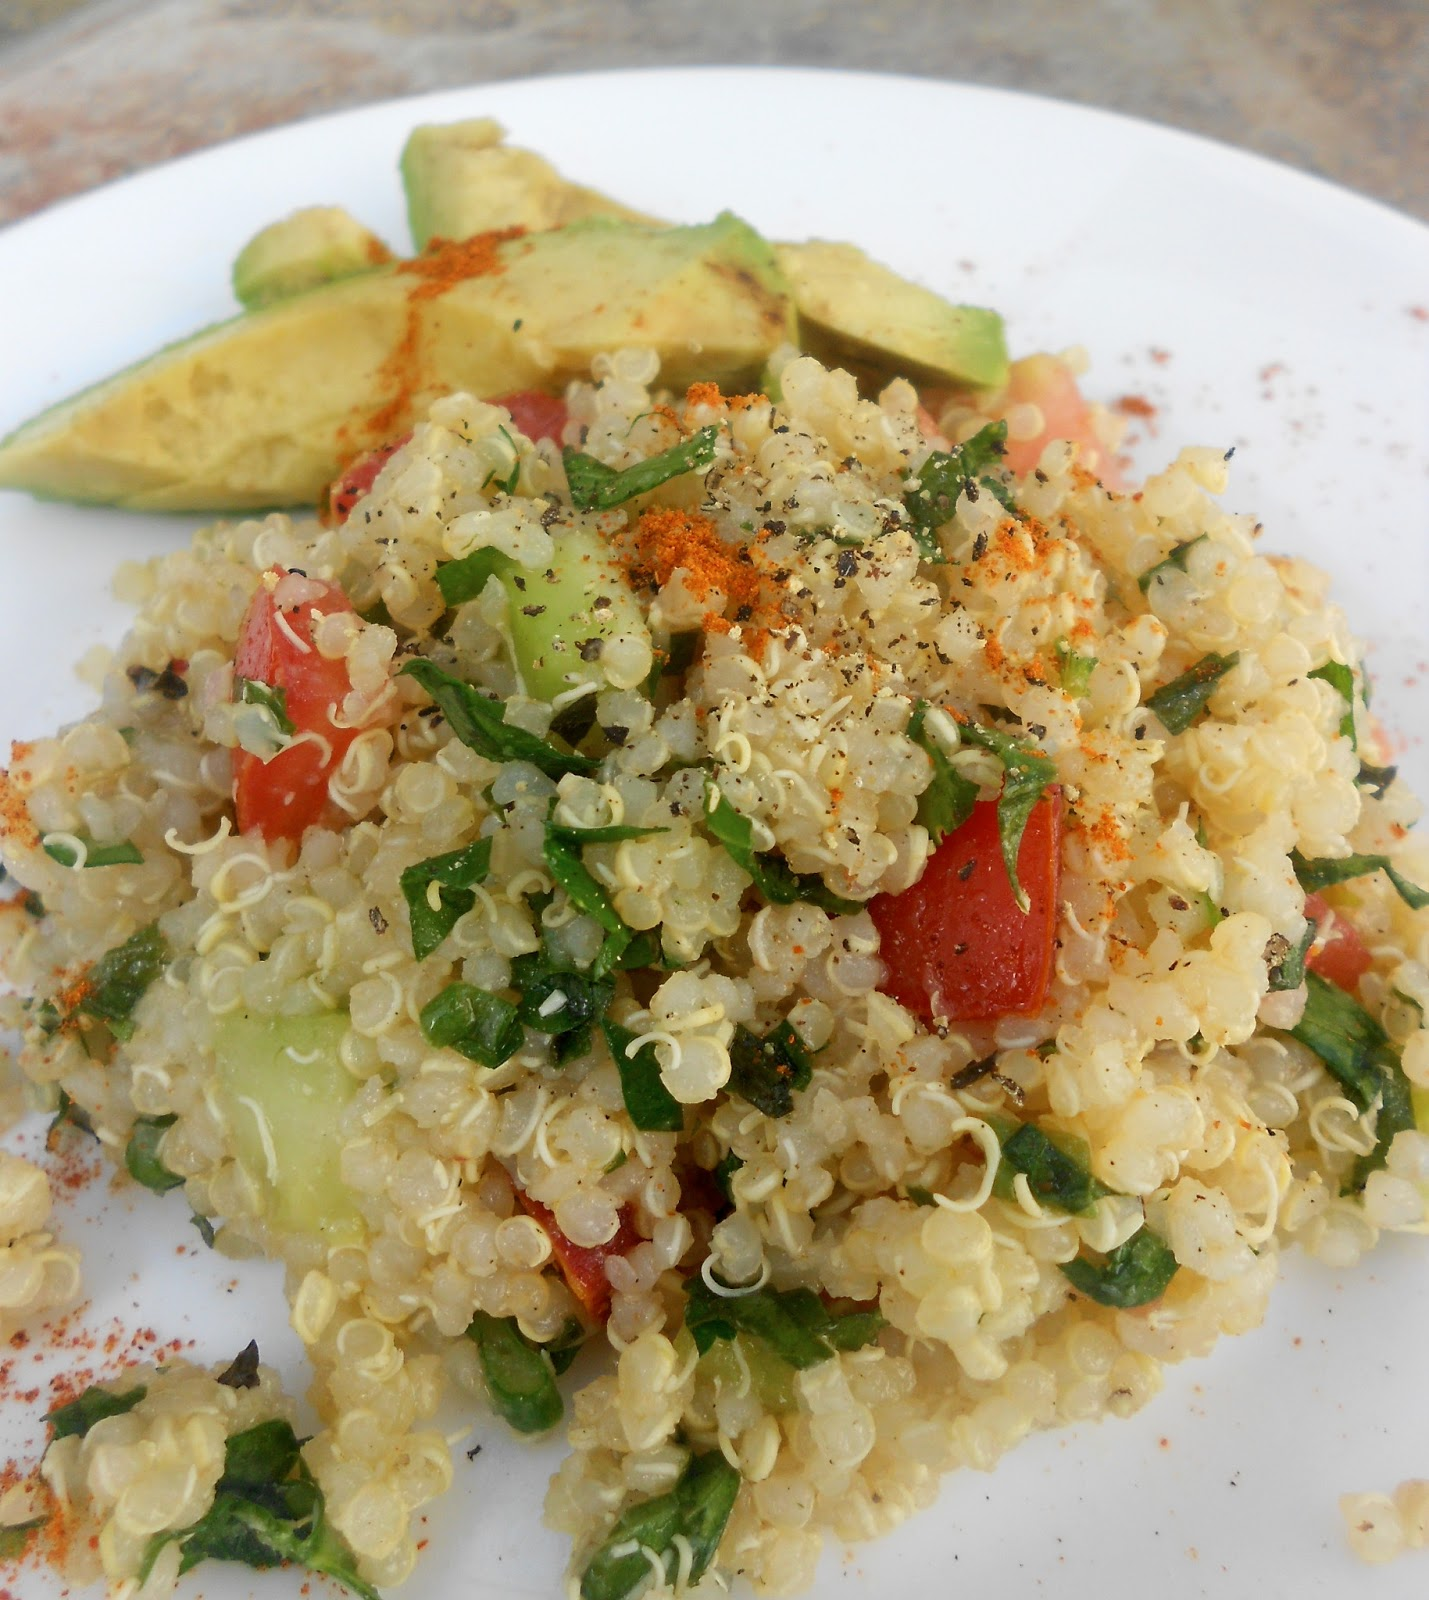 Savouring Stella: Welcome Spring! +Quinoa Tabbouleh